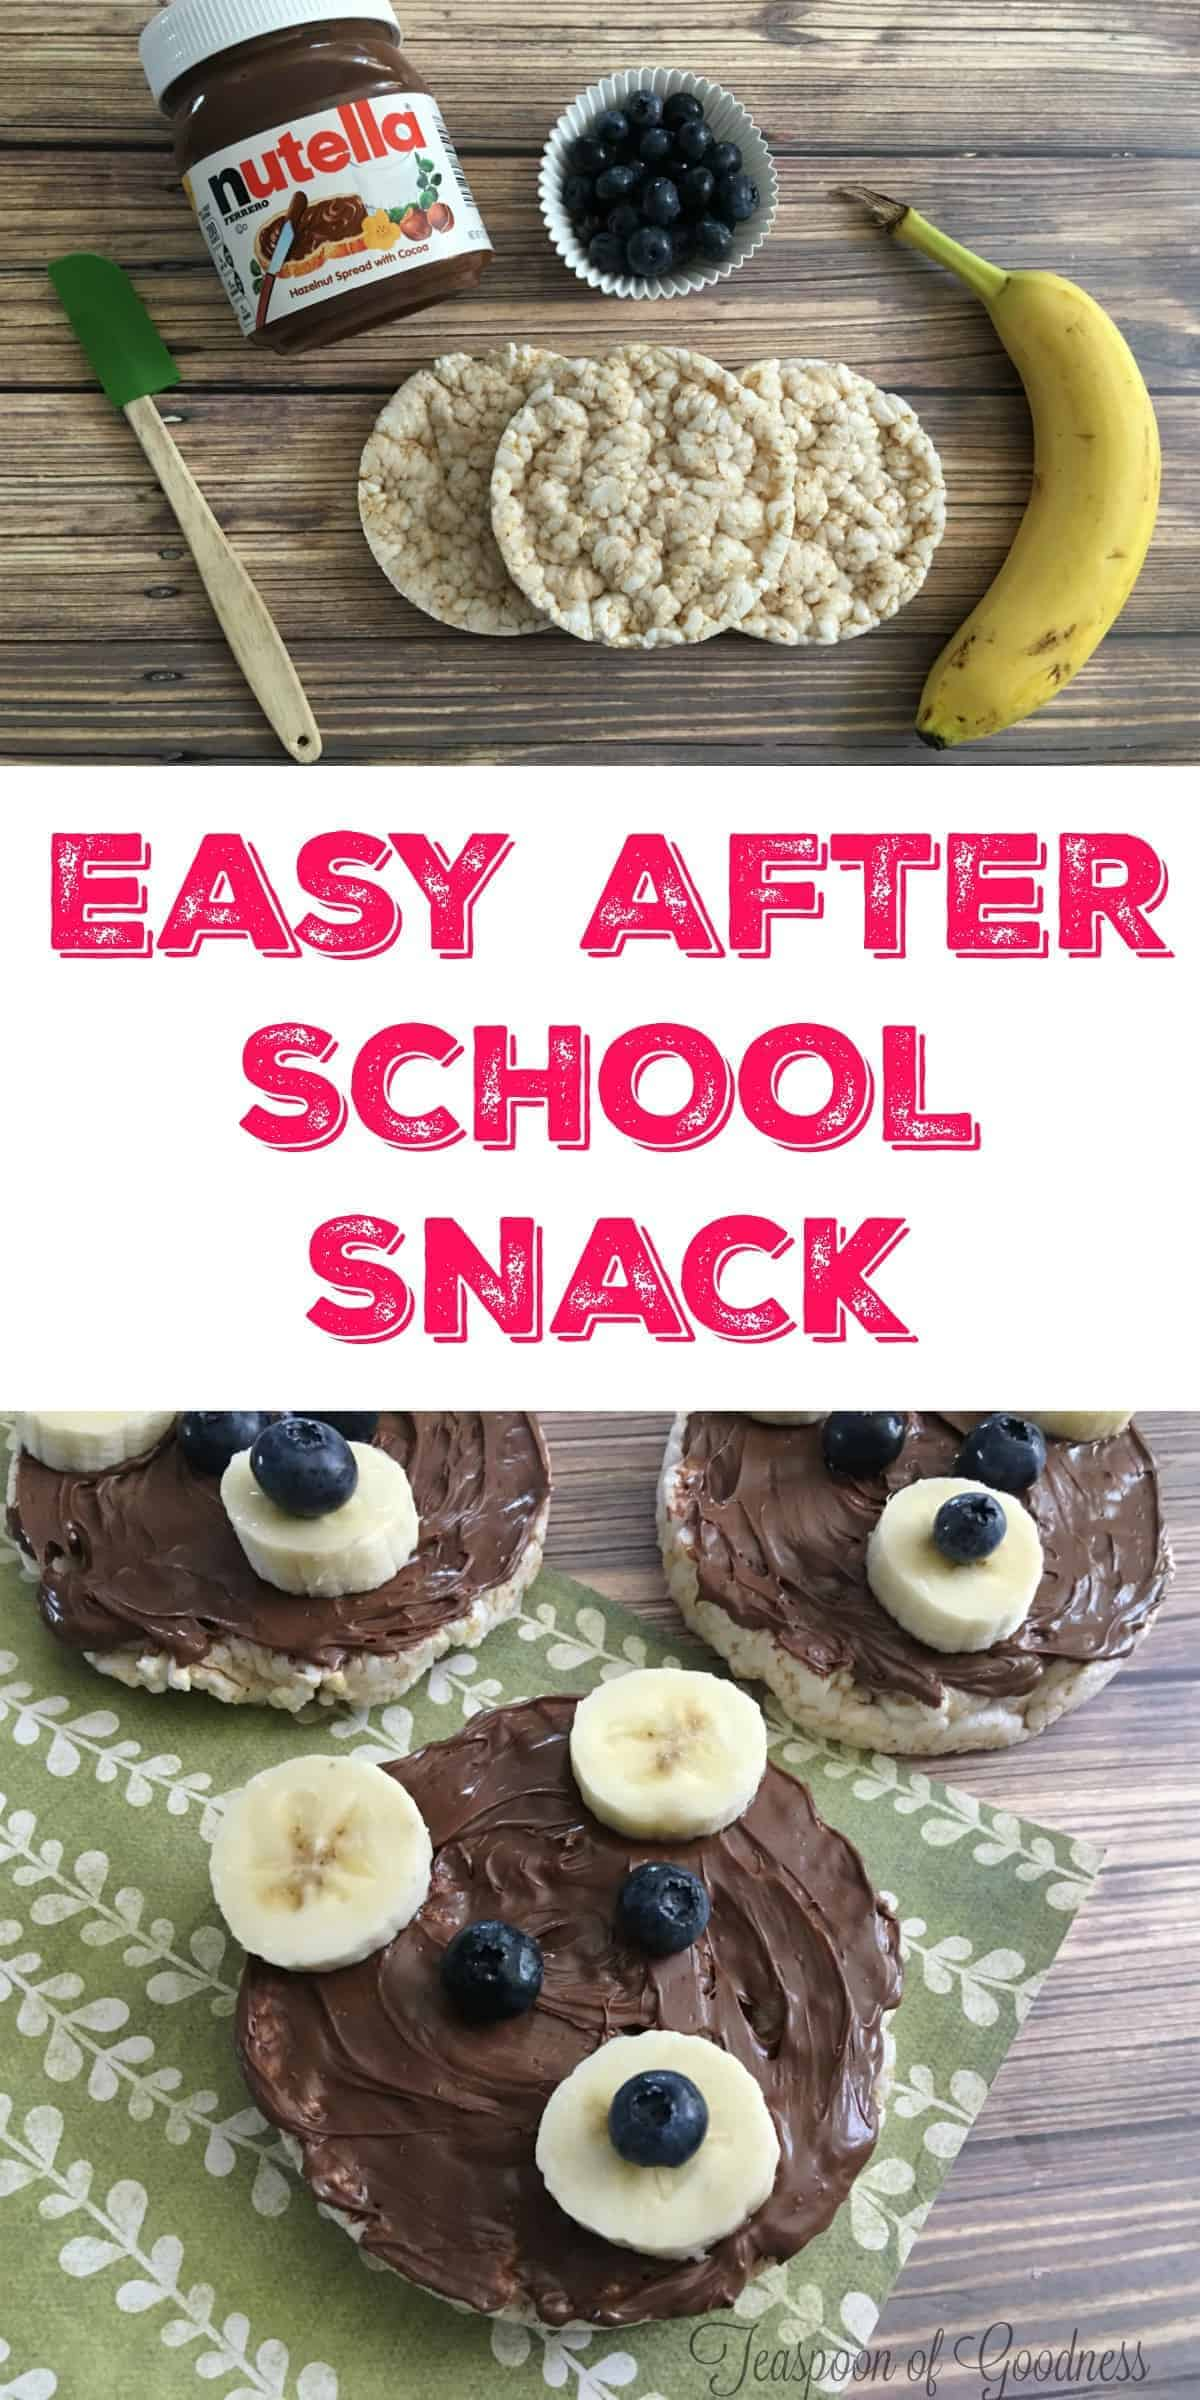 I Love Fun After School Snack Ideas For My Kids And This Three Bears Nutella